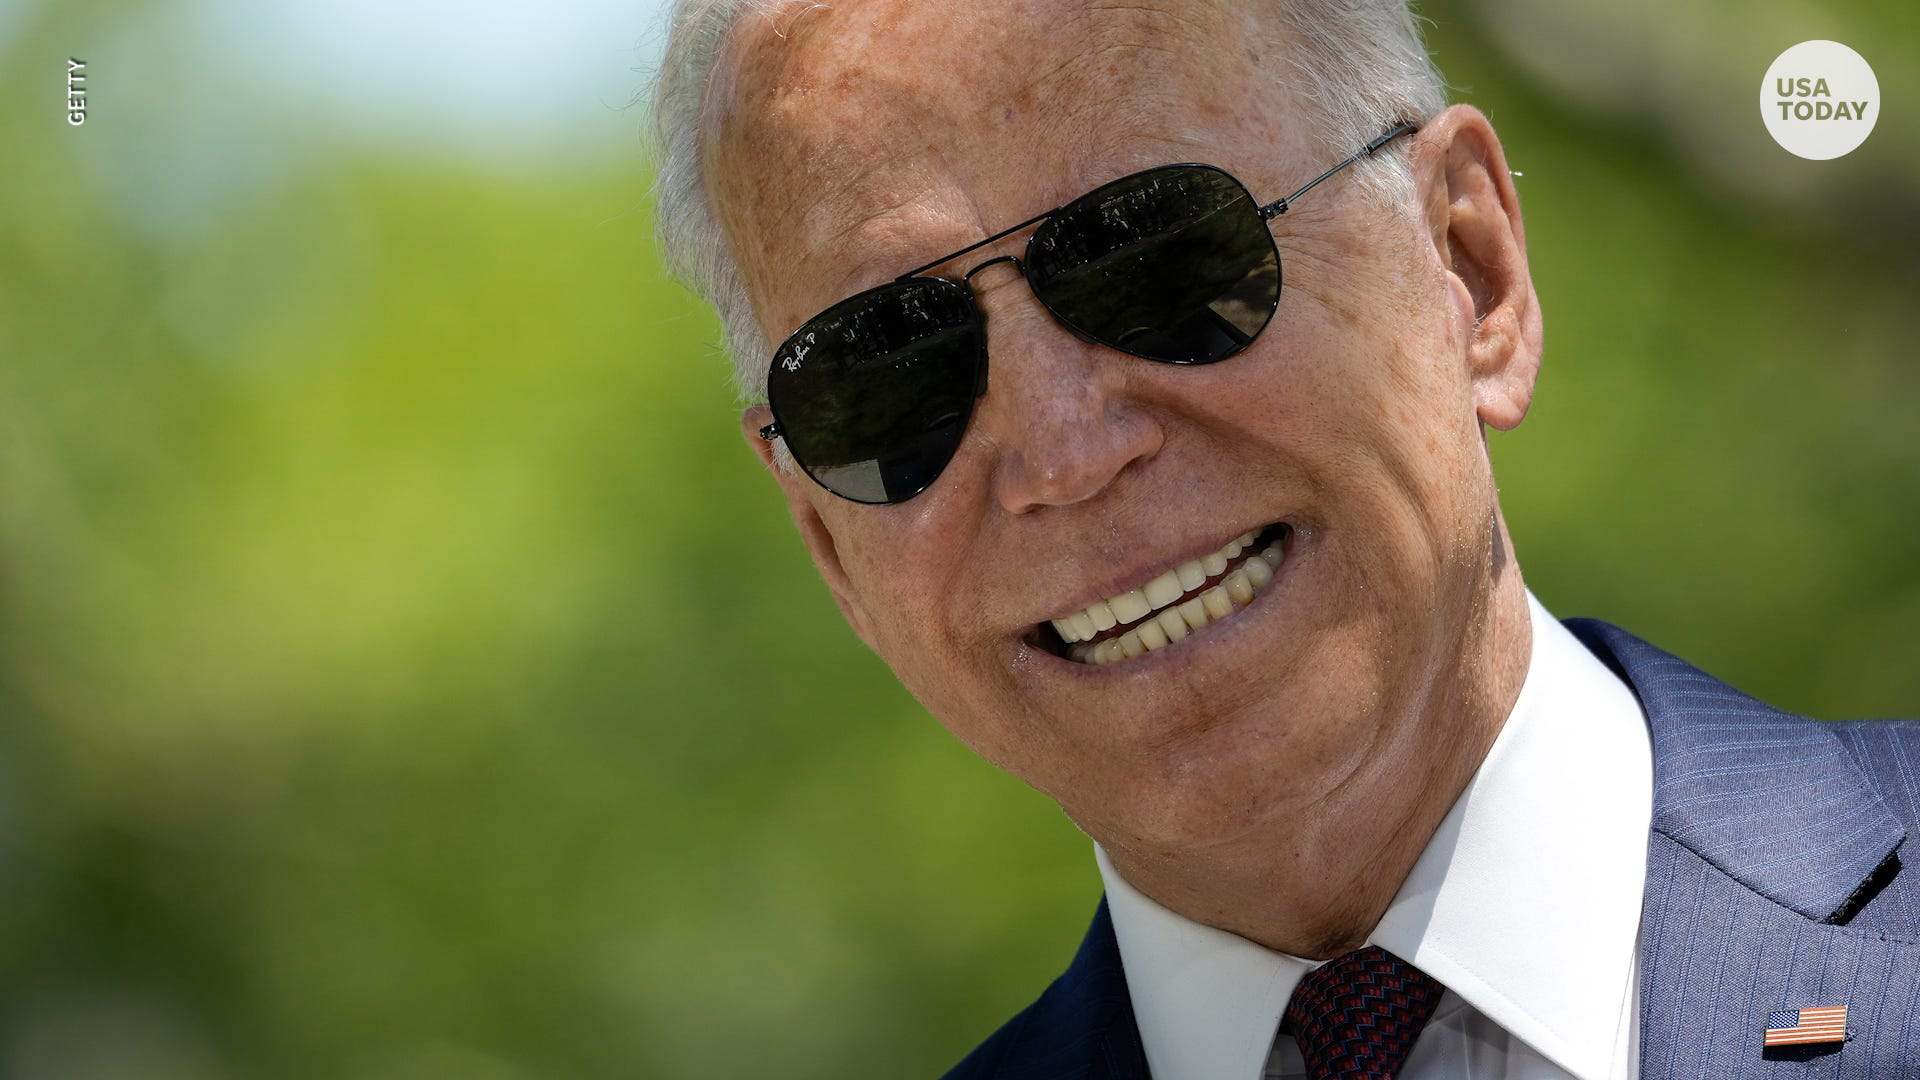 From Biden's aviators to Lincoln's hat, a look back at past presidents' iconic styles